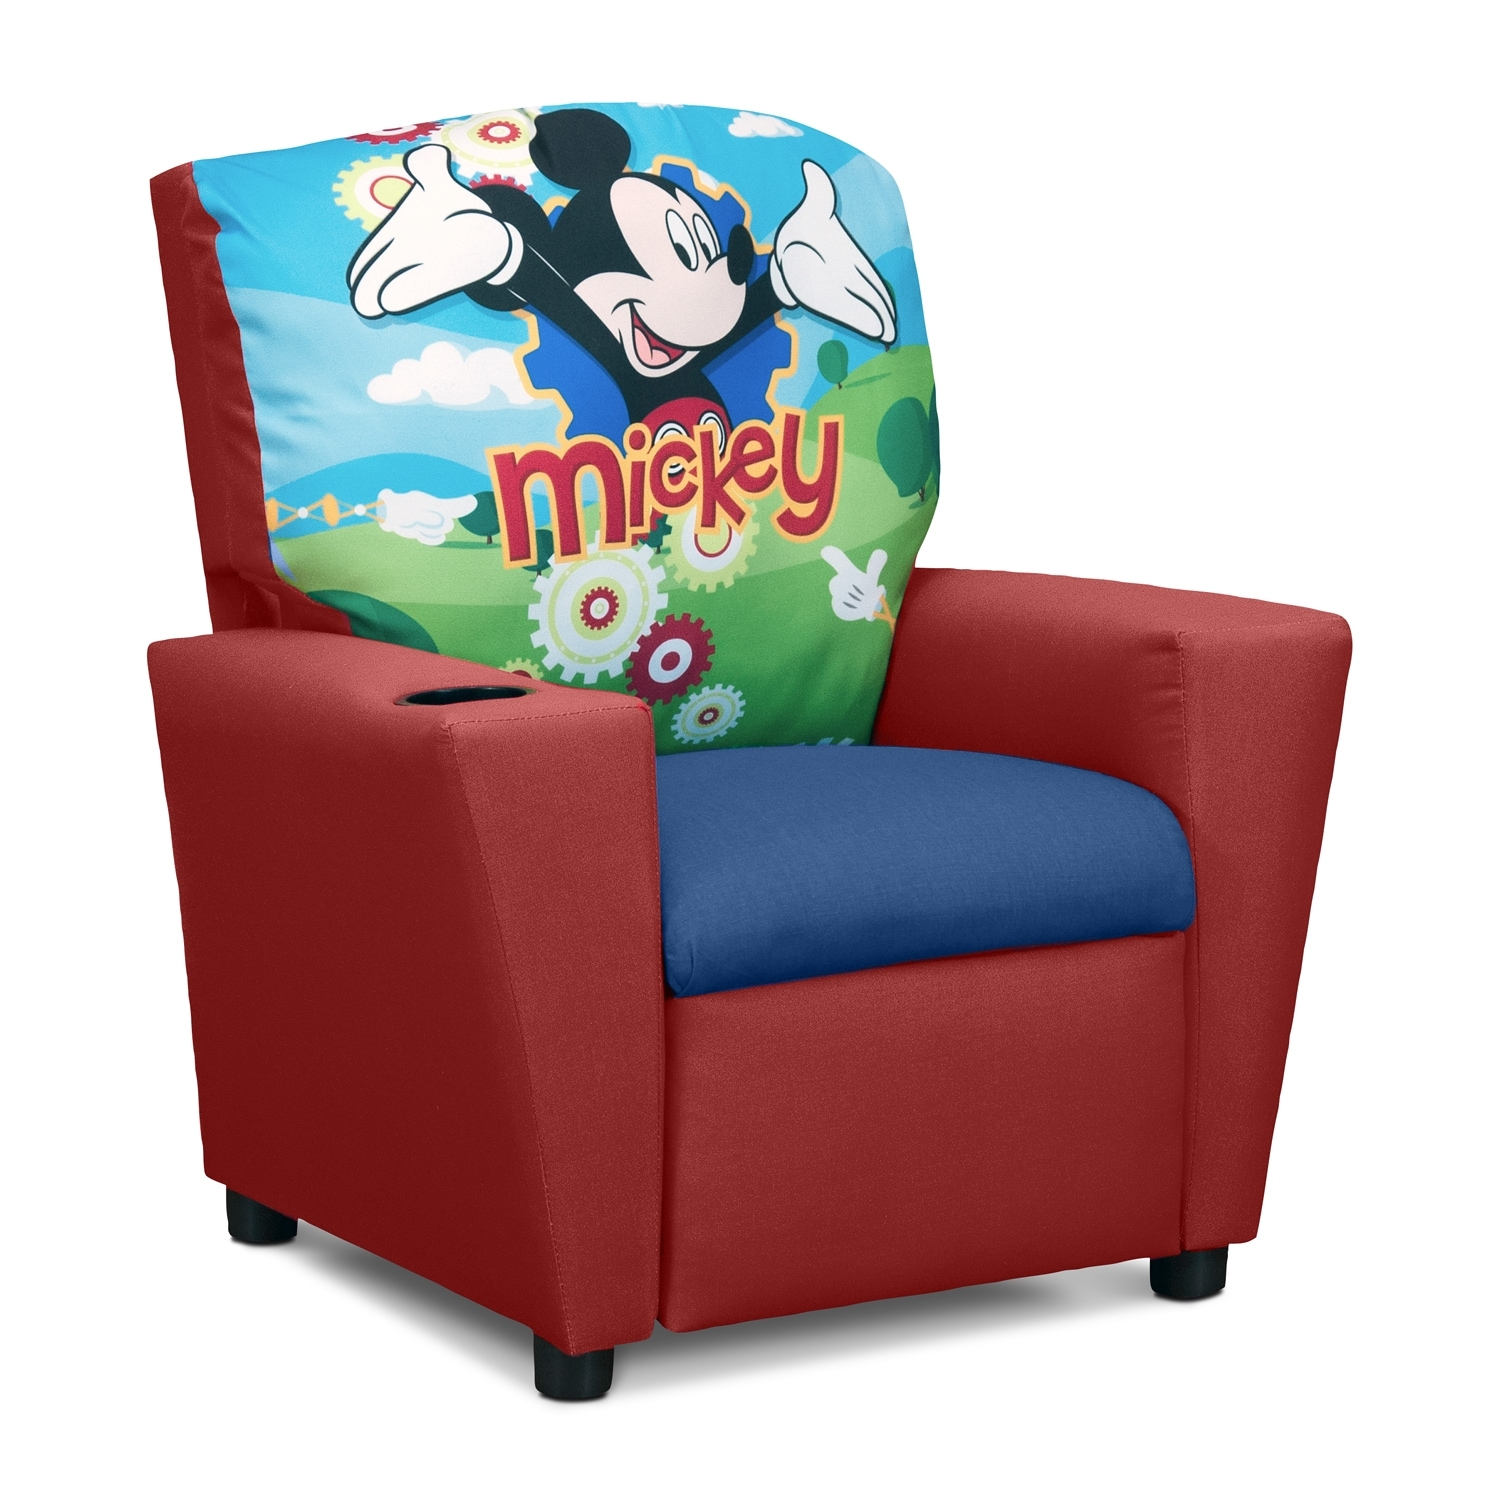 Mickey Mouse Childu0027s Recliner - Red  sc 1 st  Value City Furniture : childs recliners - islam-shia.org